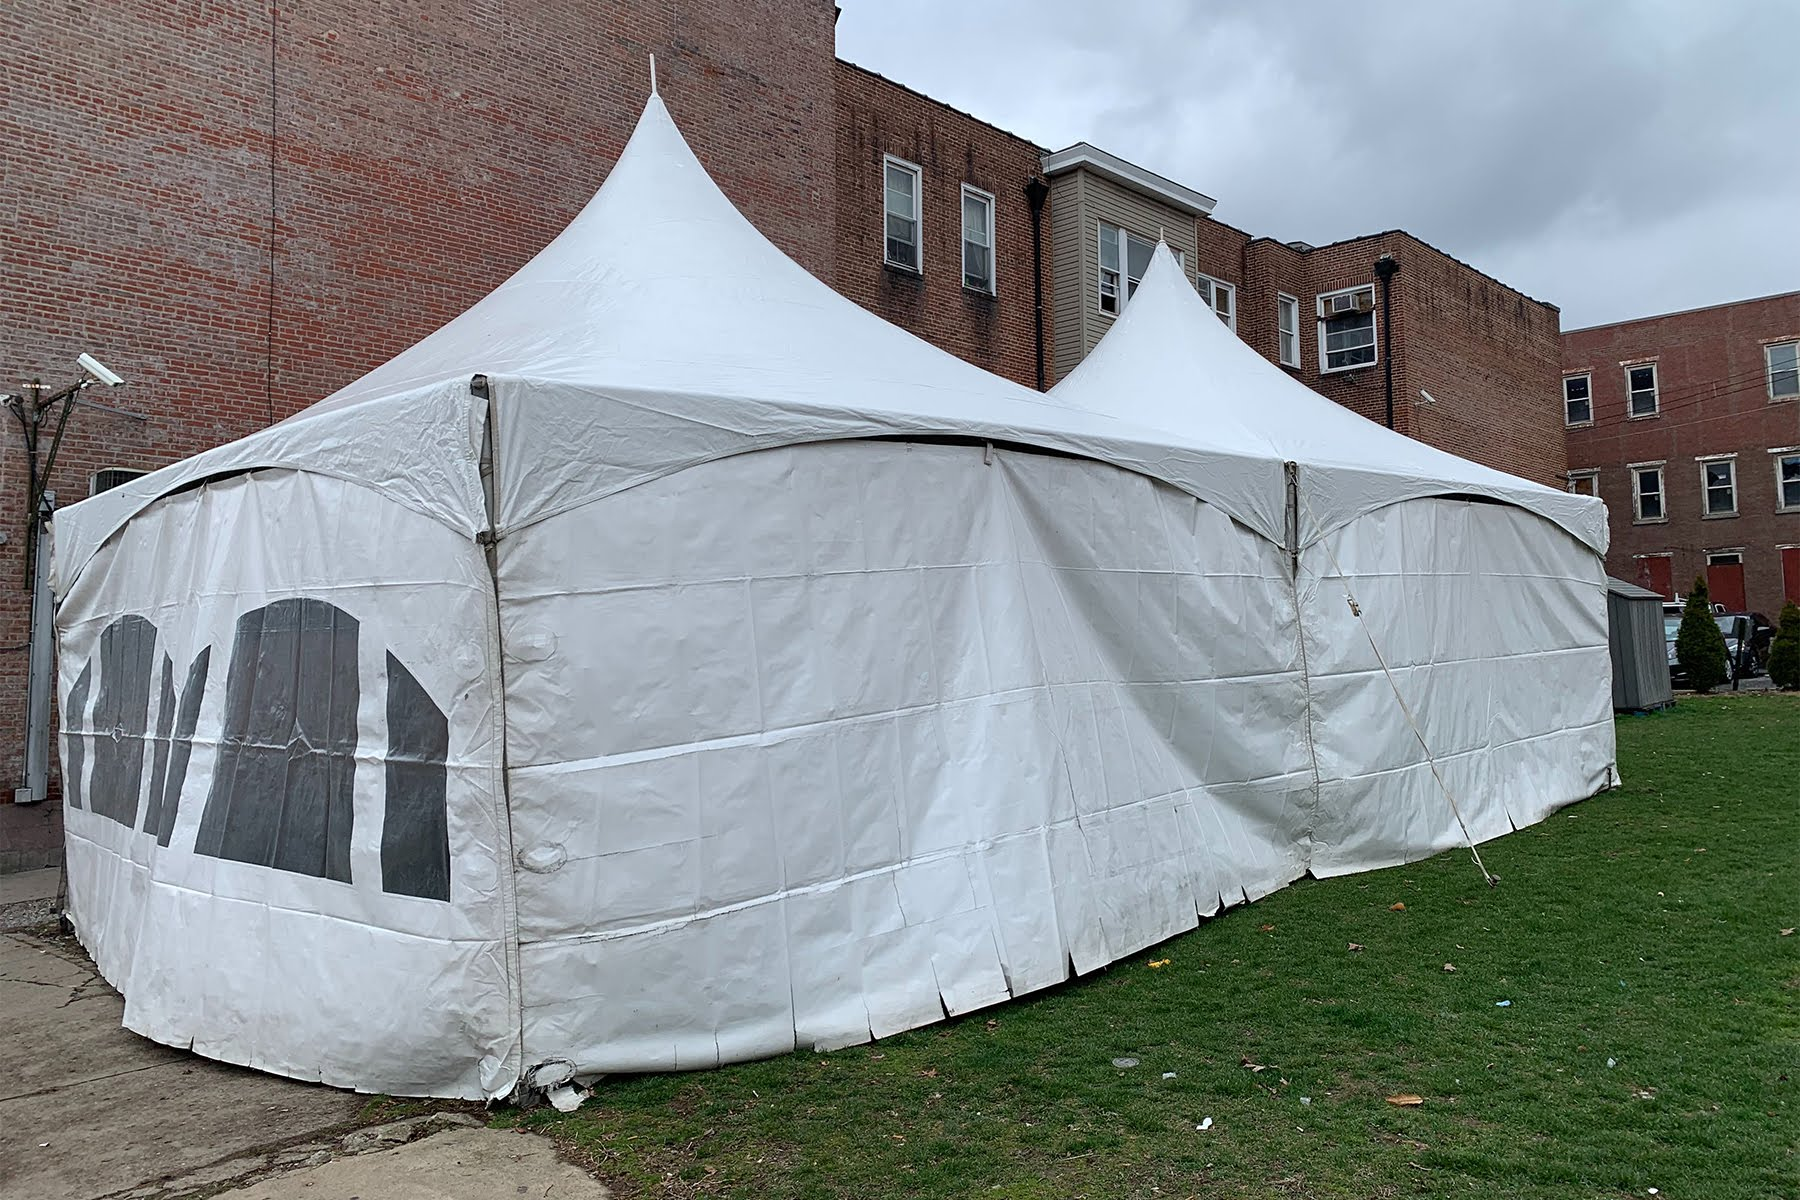 A tent set up to provide daytime shelter for homeless people, at the Light of Life Rescue Mission, in the Central North Side. (Photo courtesy of Doug Smith, Light of Life)